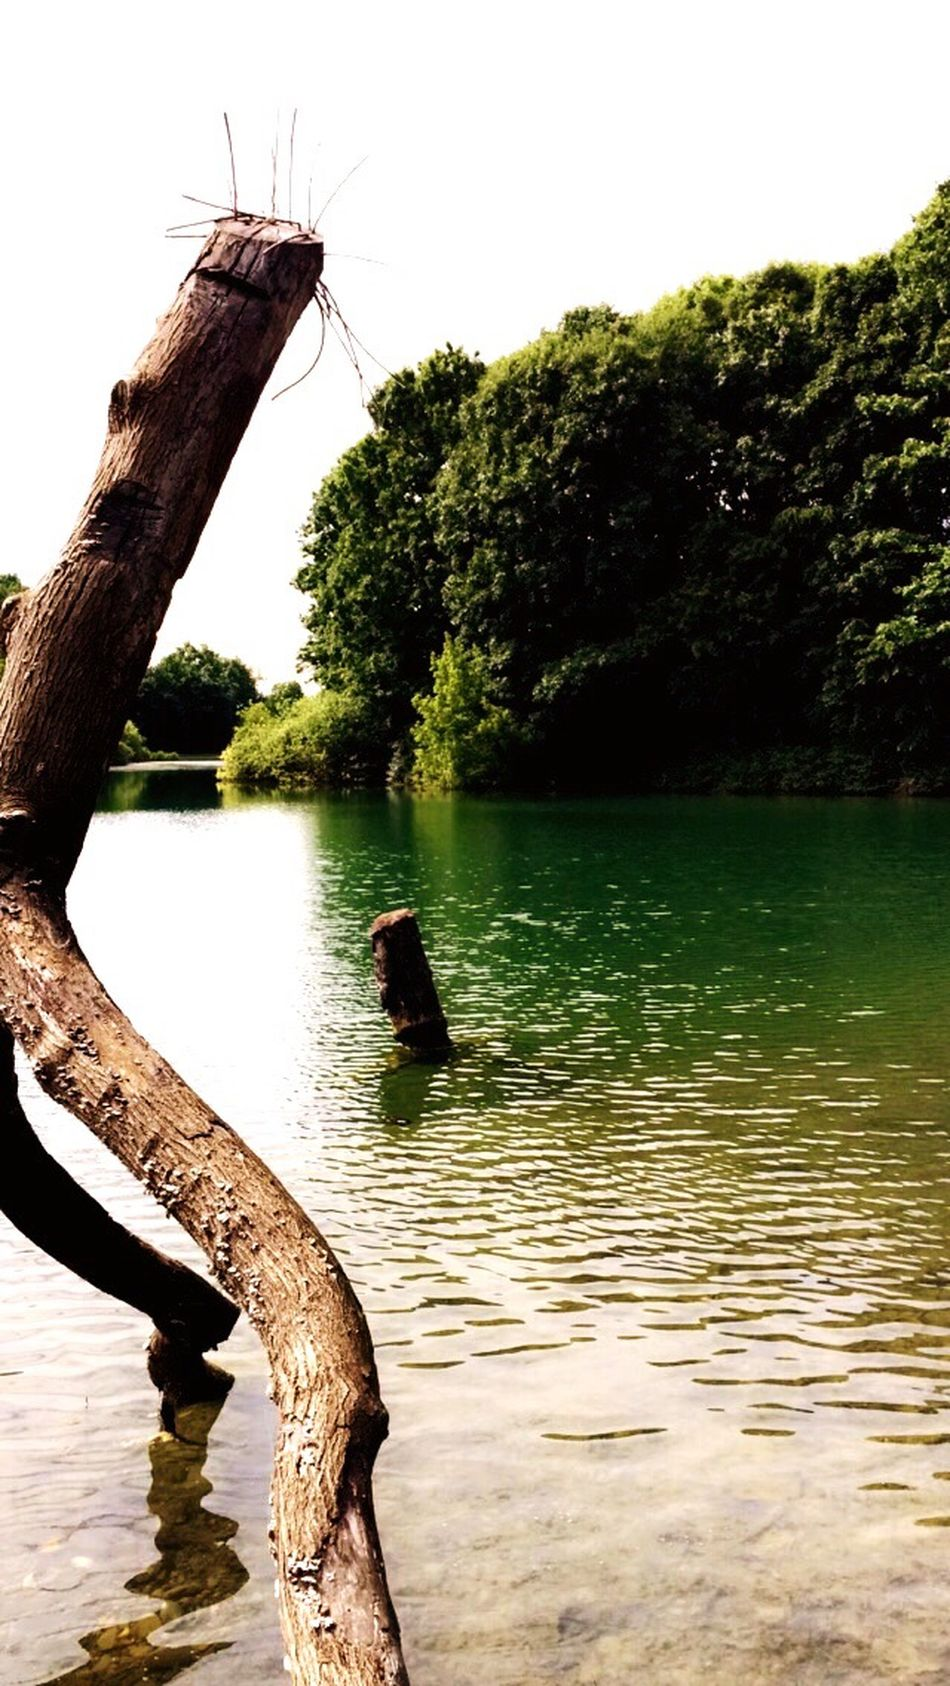 Lake Lake View Lakeshore Afternoon The Essence Of Summer- 2016 EyeEm Awards The Essence Of Summer Sunny Day Tree Green Nature Beautiful Beauty In Nature Love The Great Outdoors - 2016 EyeEm Awards